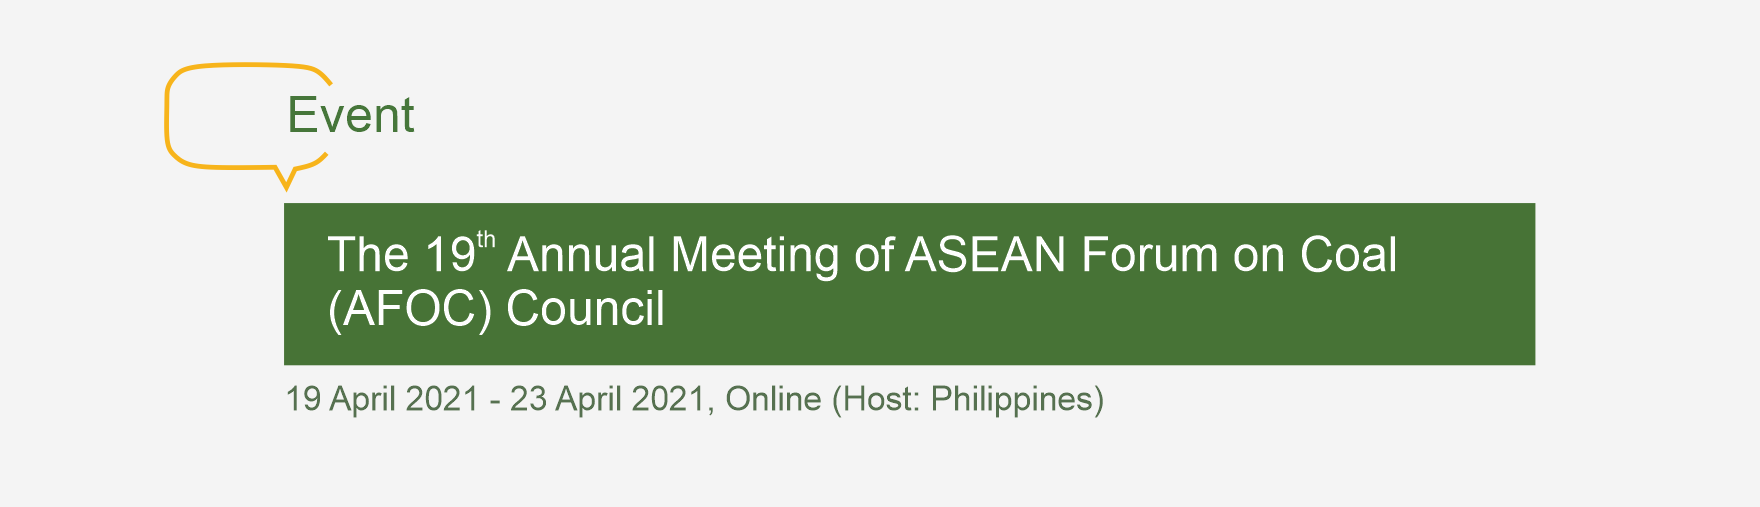 The 19th Annual Meeting of ASEAN Forum on Coal (AFOC) Council